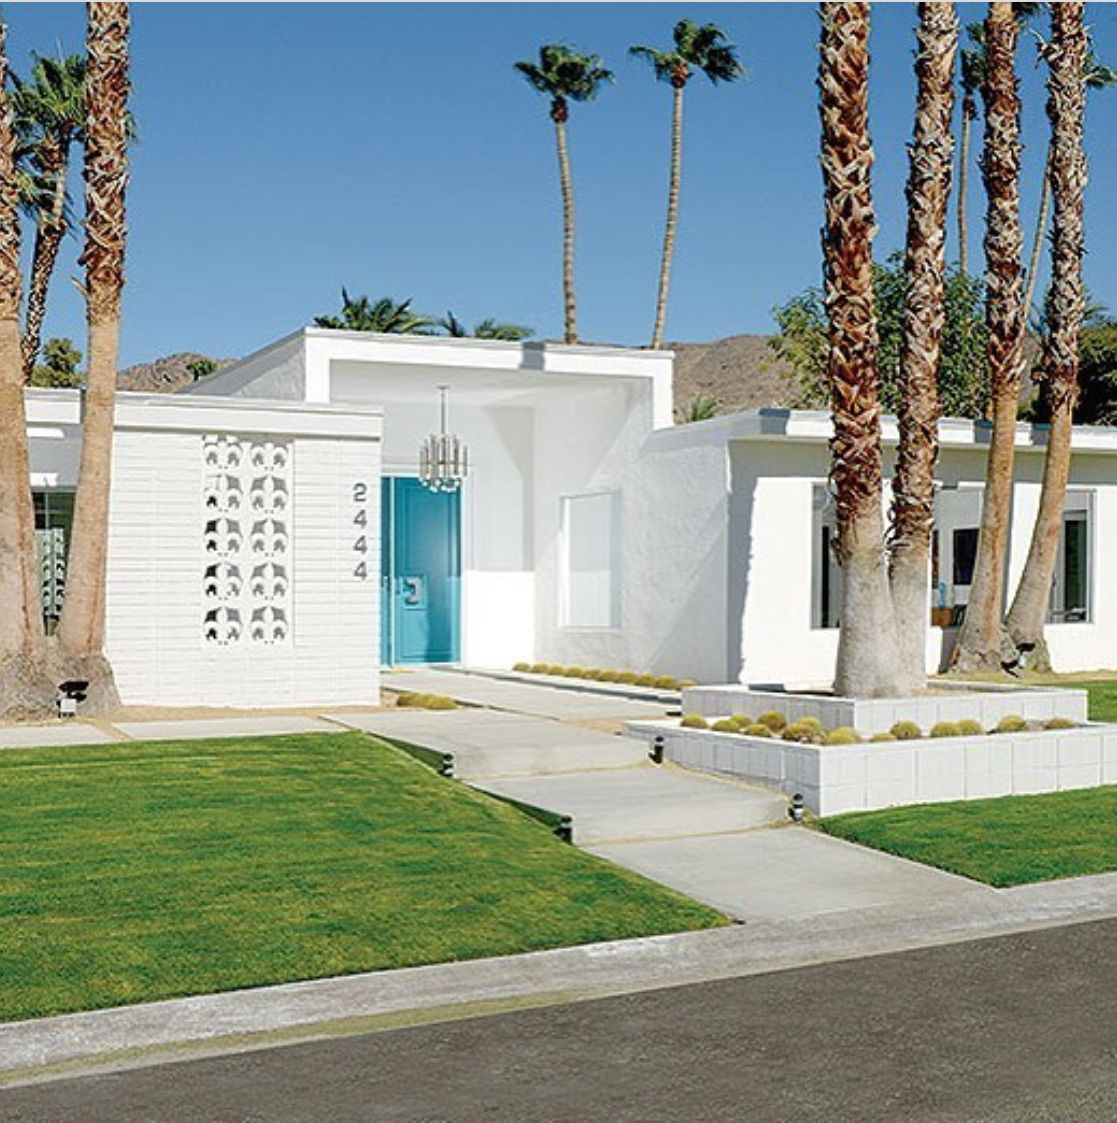 Palm Springs Clean Mid Century Modern Exterior With Aqua Door Mid Century Modern House Palm Springs Houses Mid Century Modern Exterior